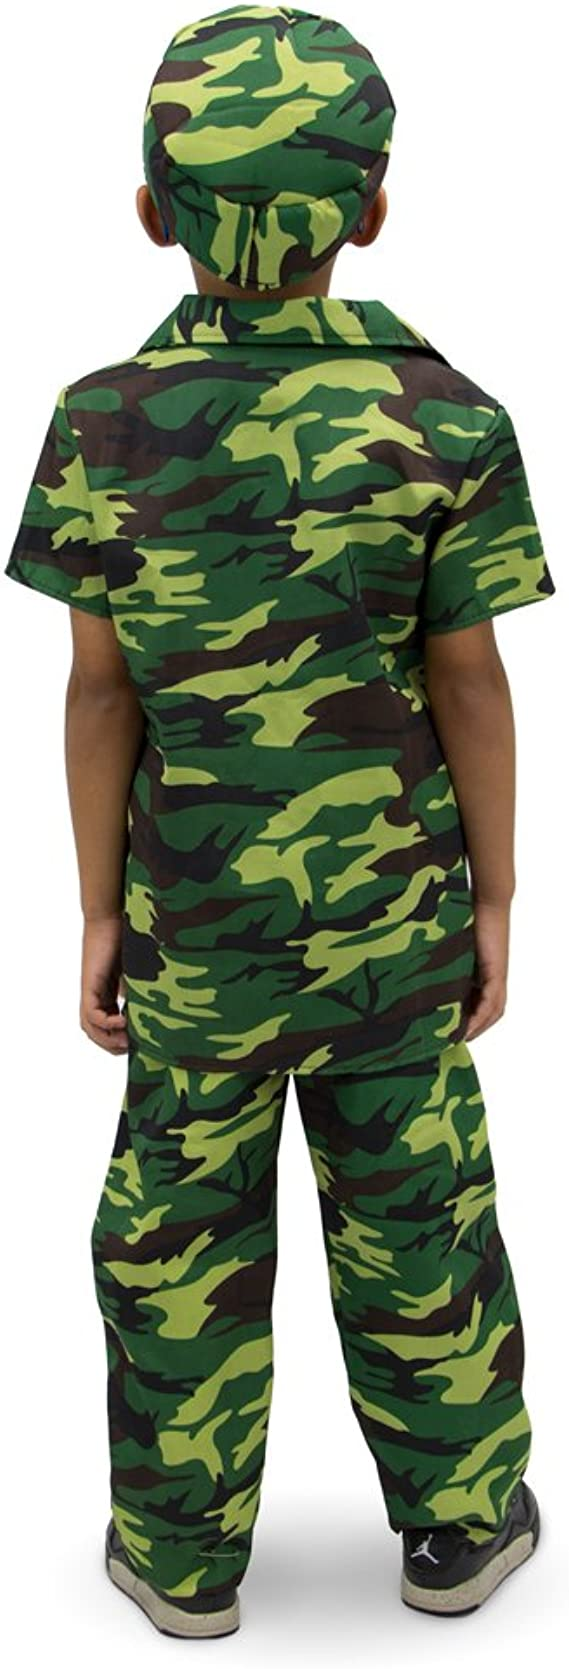 Hat Camouflage Casual Top FancyDress AGE 5-13 Children's Kids Boys Army T-shirt